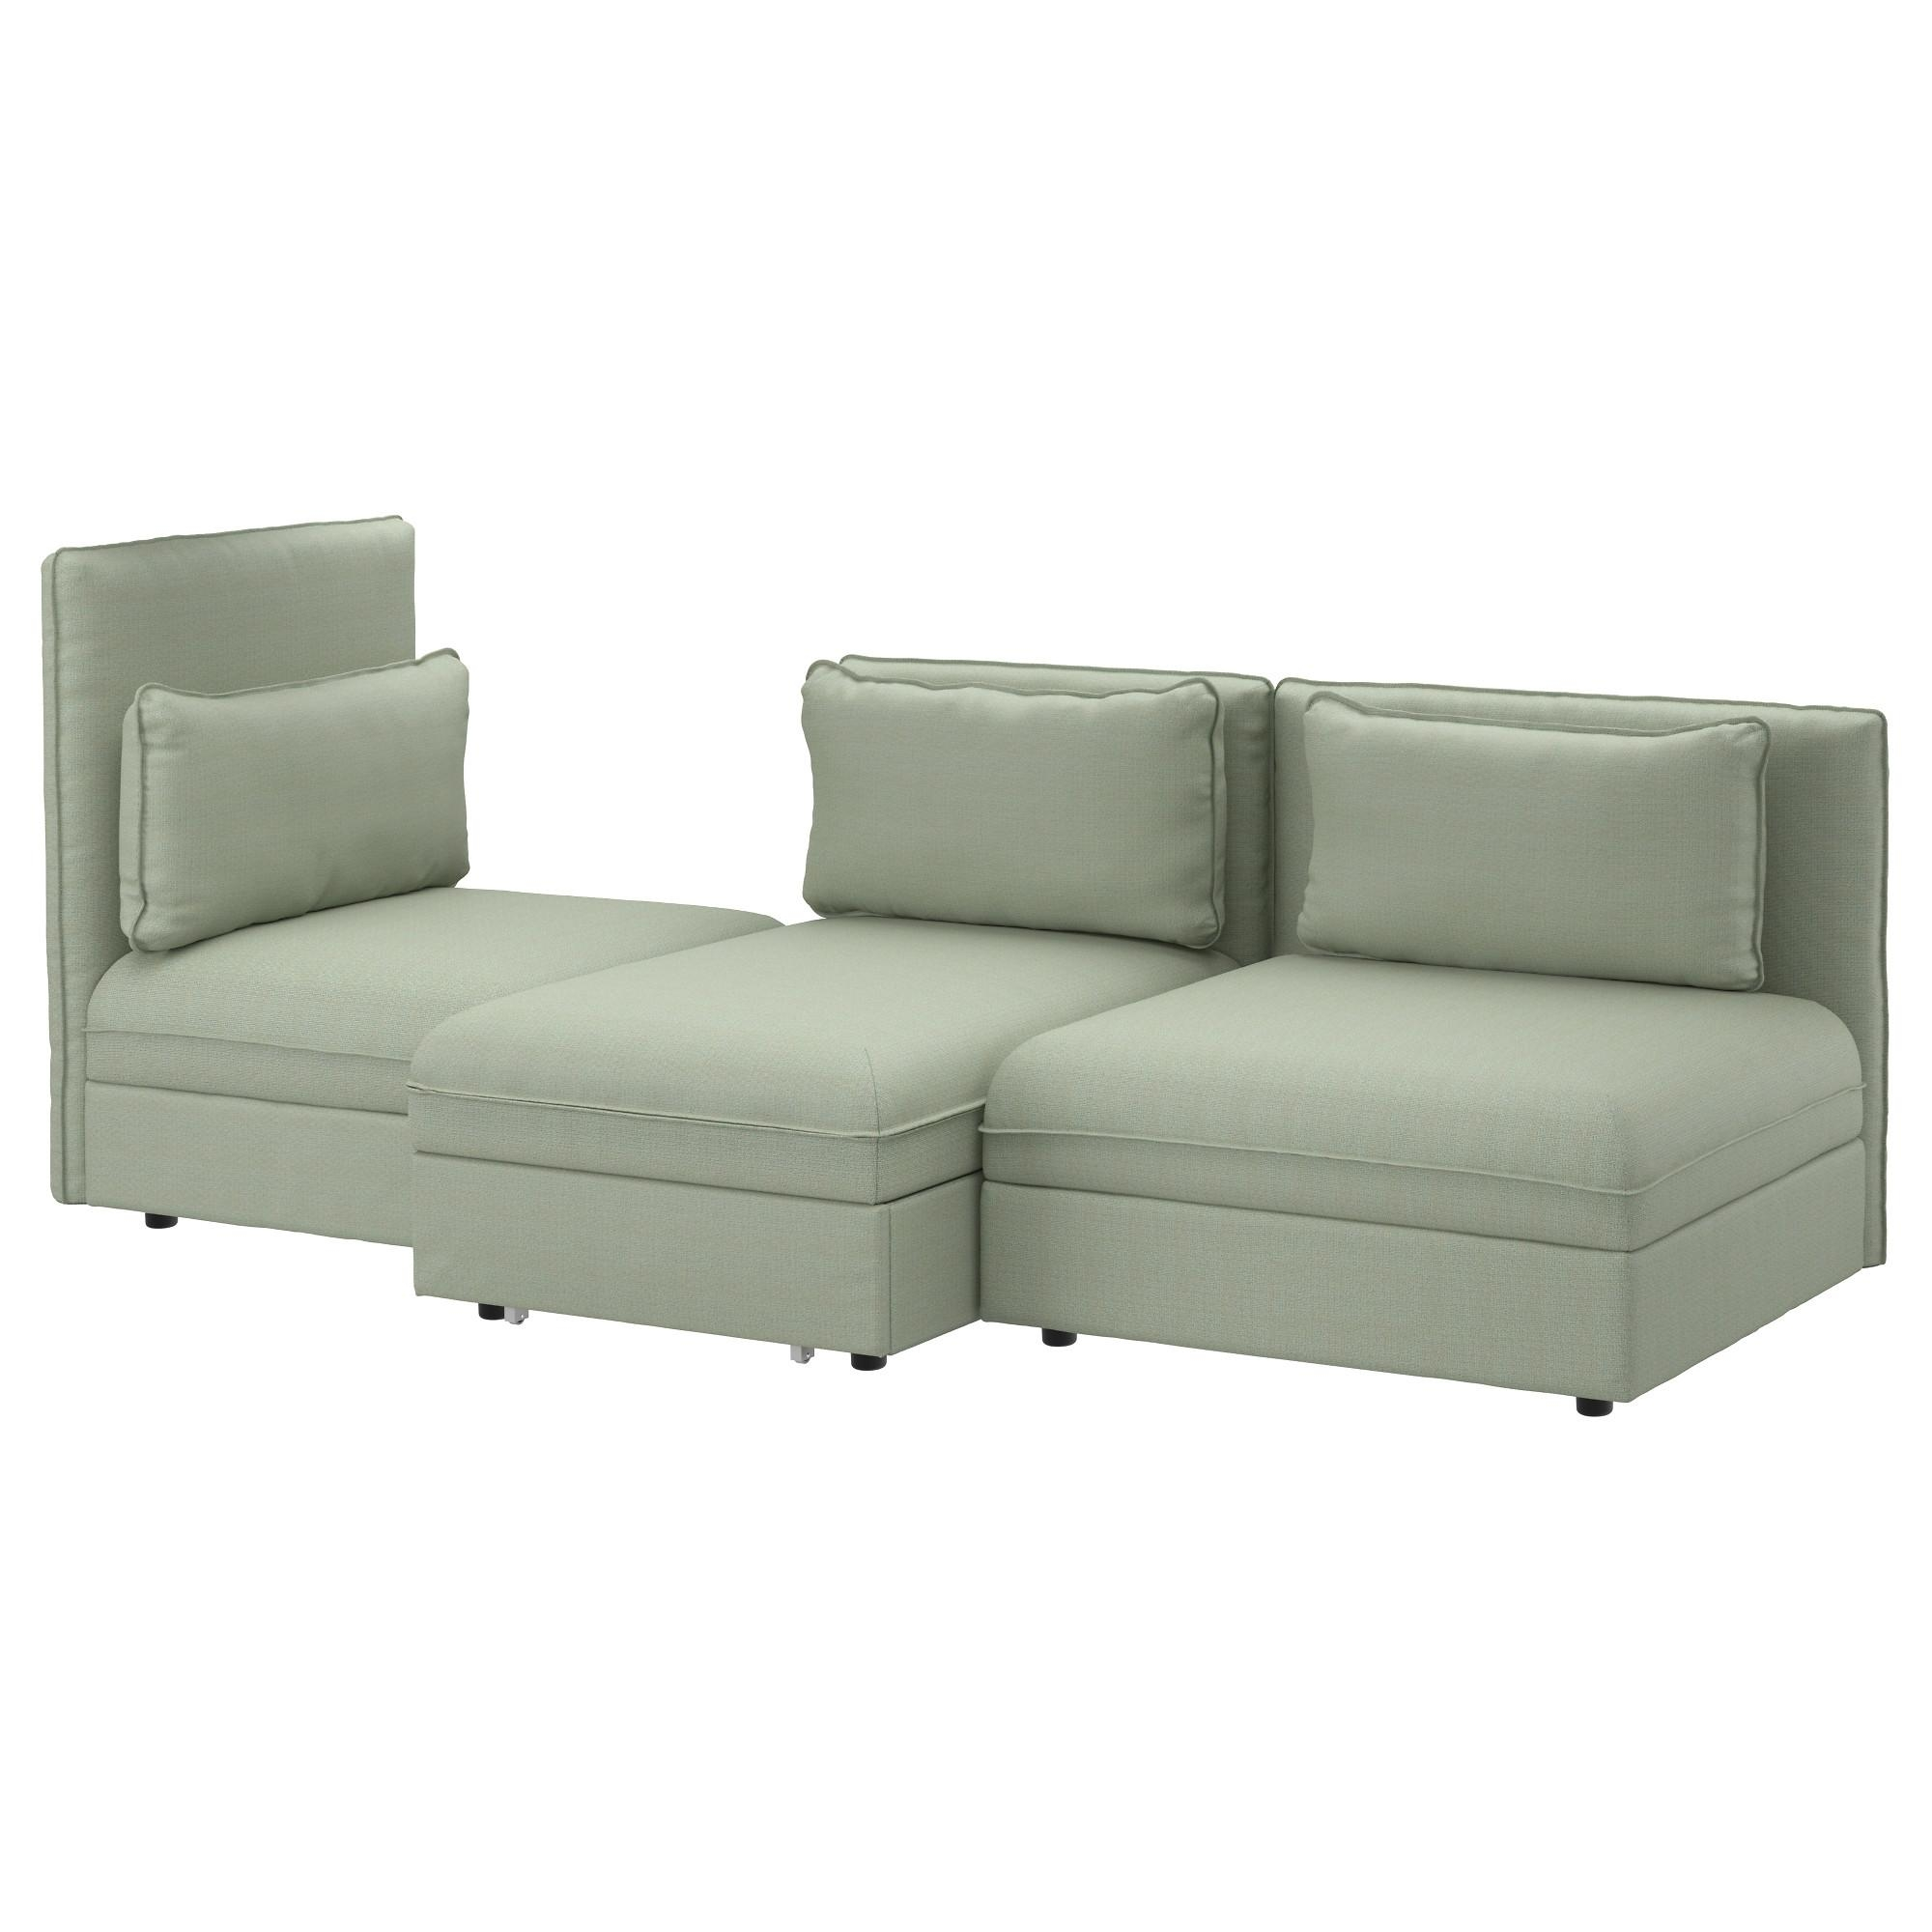 Sofa Beds & Futons – Ikea Pertaining To Sleeper Sectional Sofa Ikea (Image 16 of 20)